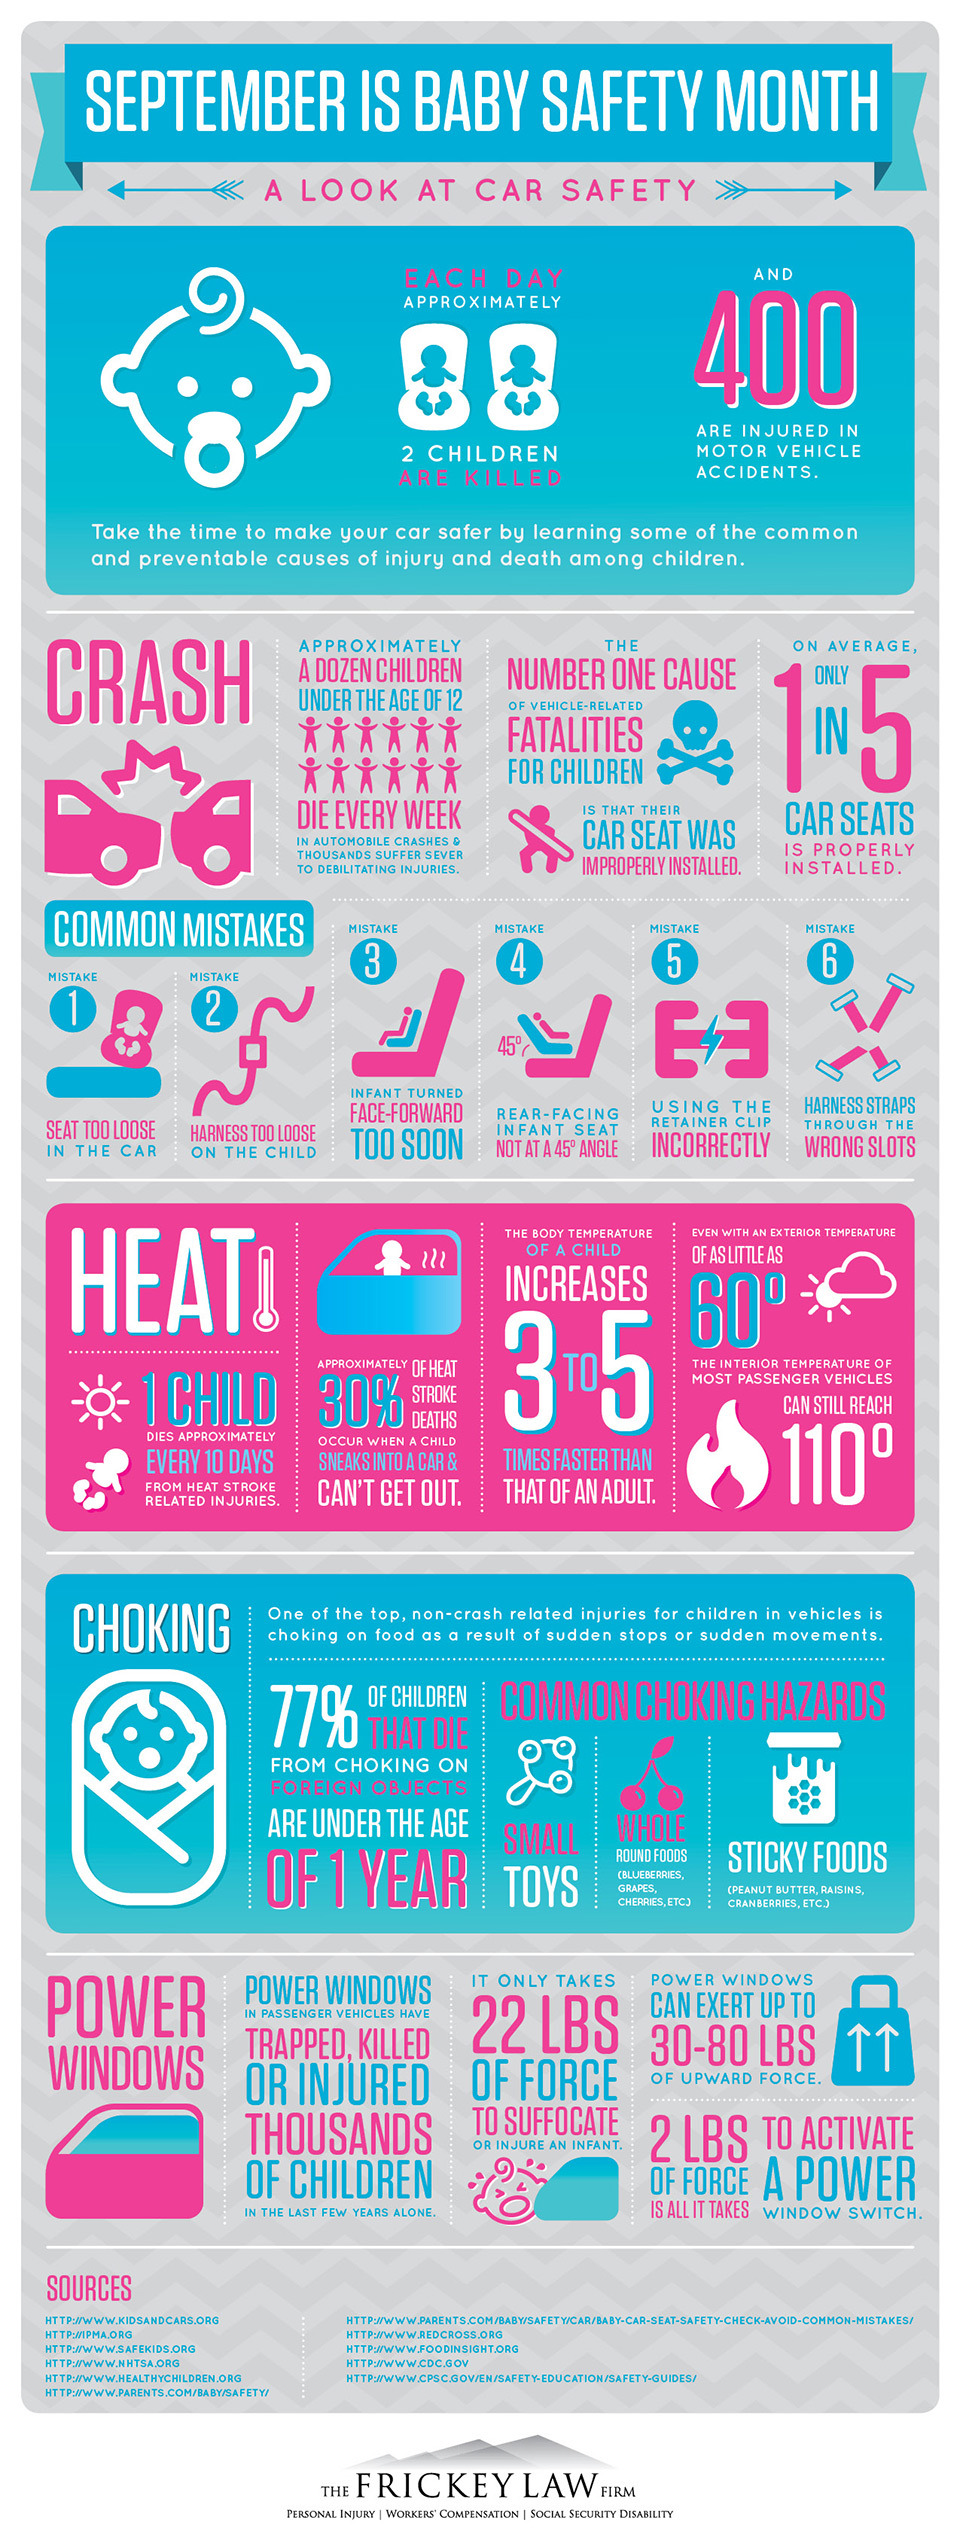 baby-safety-infographic-large